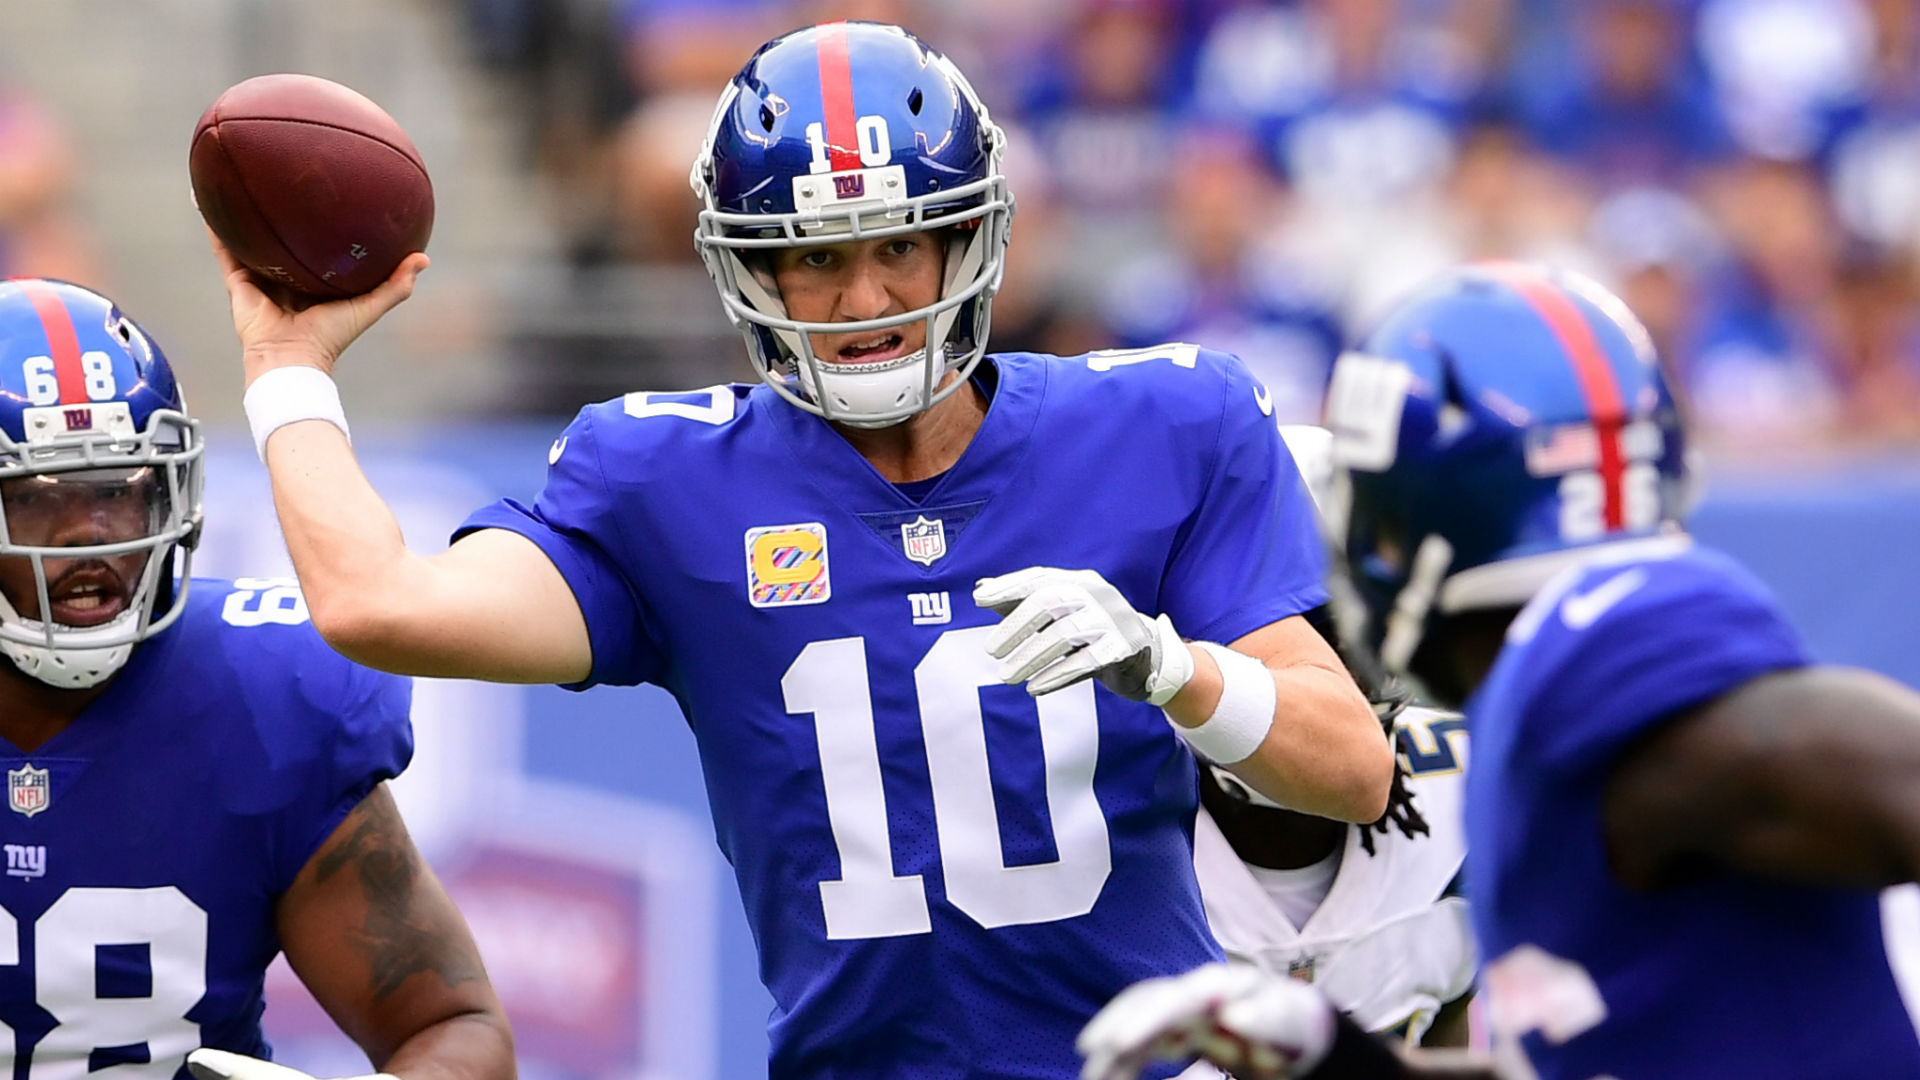 Giants vs. 49ers: Statistics, numbers and broken records